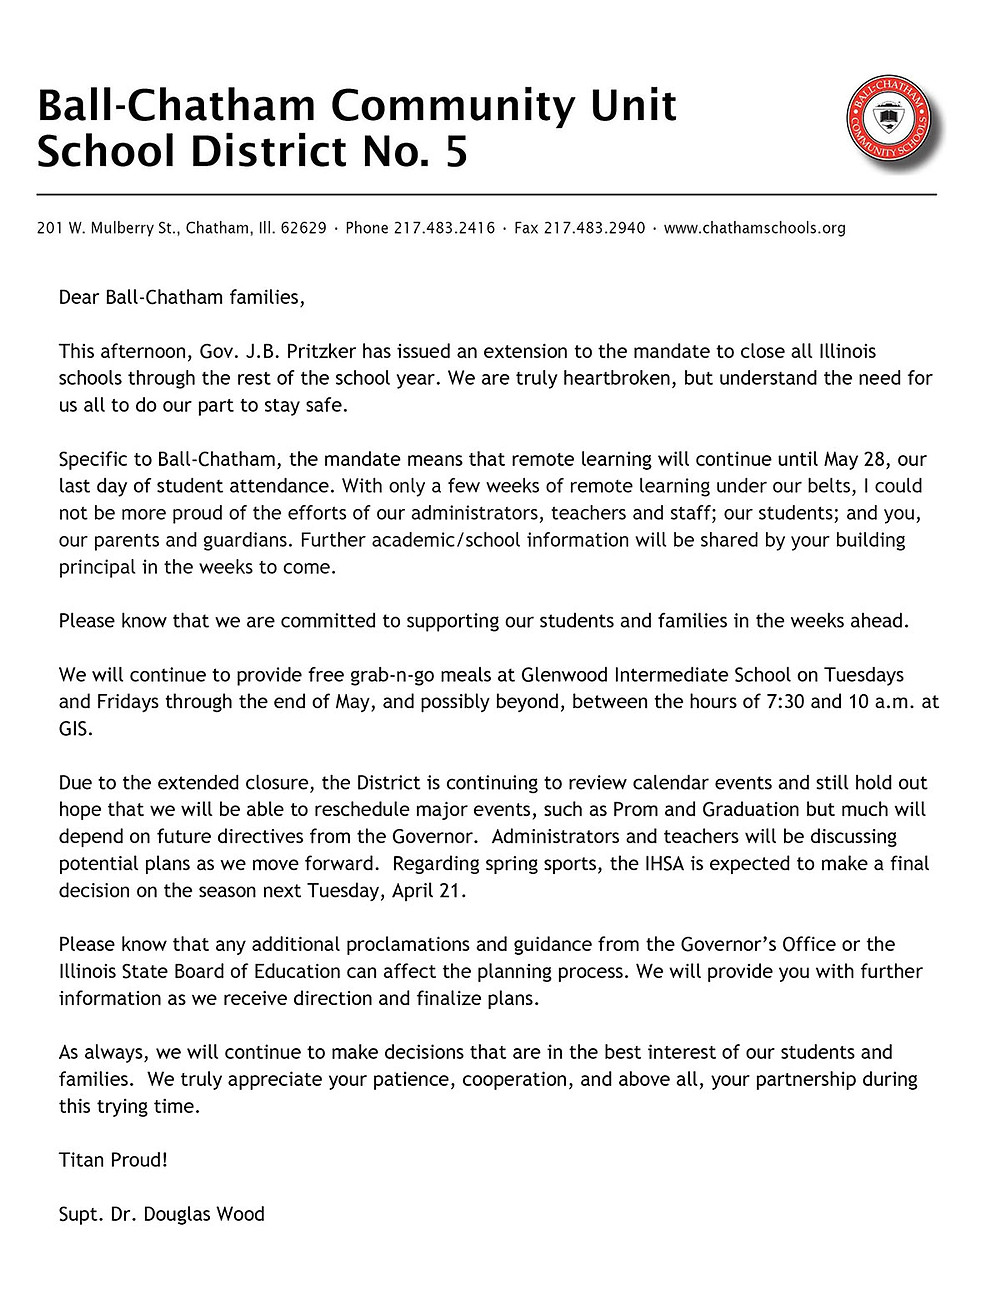 April 17, 2020 Message from Supt. Dr. Wood